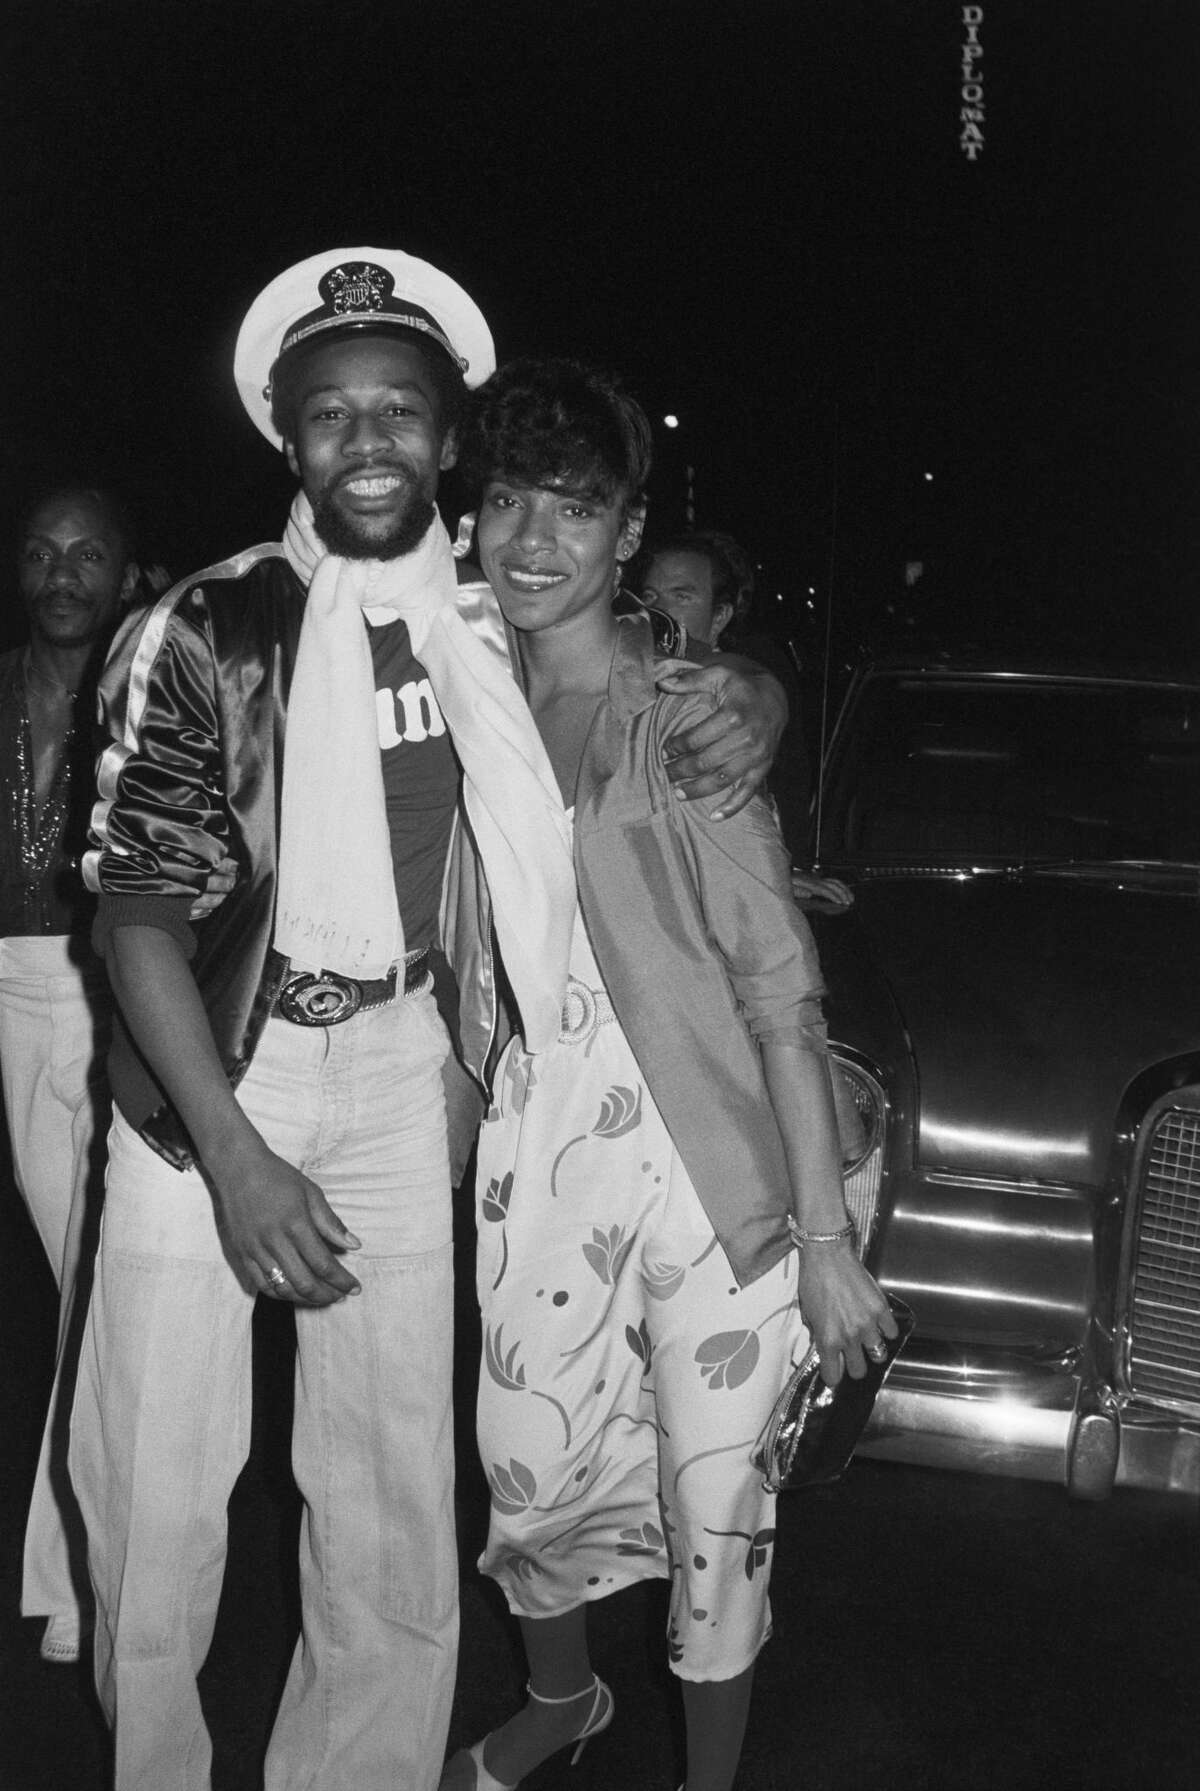 1980:Victor Willis, lead singer and co-songwriter for the original line up of American disco group Village People, with his first wife, actress Phylicia Allen-Willis (Rashad).